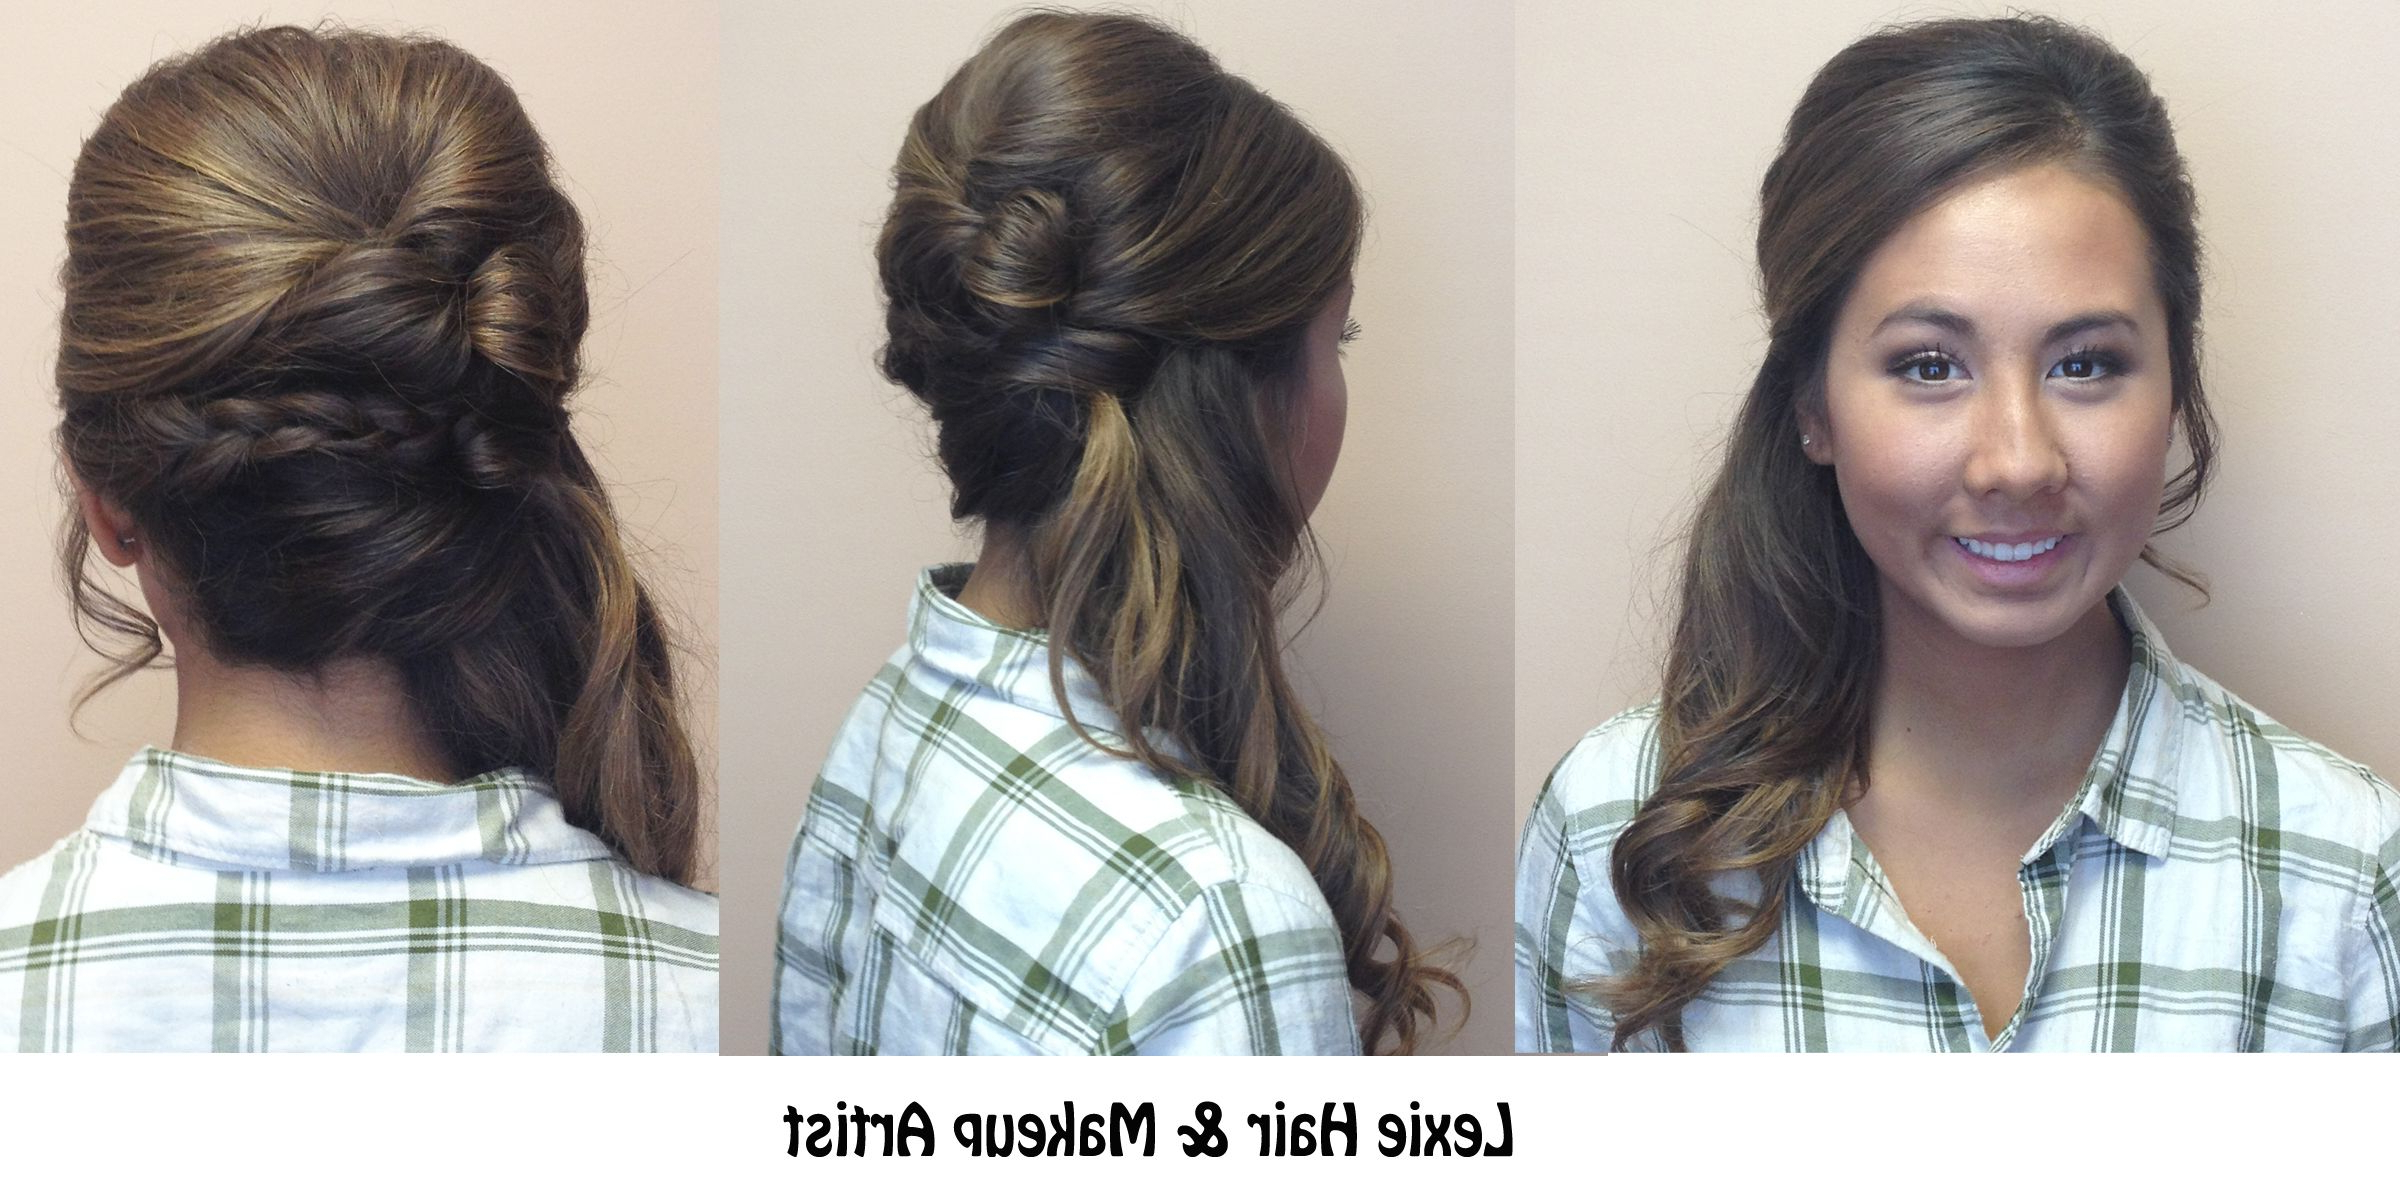 Side Ponytail With Braid And Volume: Wedding, Prom, And Special Within 2017 Textured Side Braid And Ponytail Prom Hairstyles (View 19 of 20)